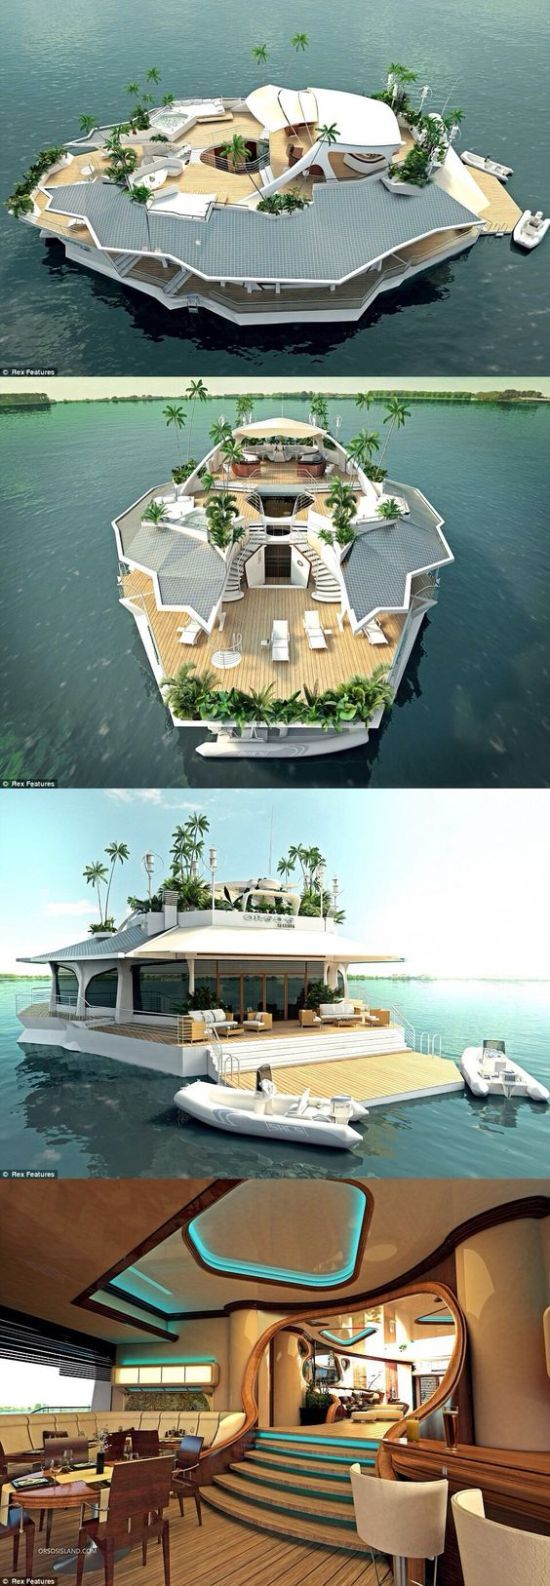 Best Houseonthewater Images On Pinterest Floating - Awesome floating house shore vista boat dock by bercy chen studio